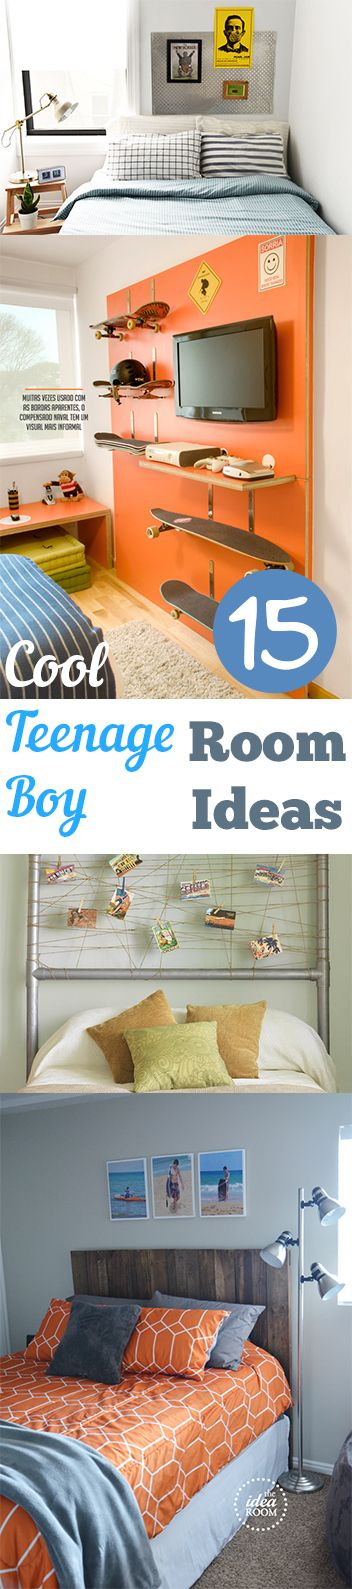 17 Best Ideas About Cool Boys Bedrooms On Pinterest | Lego Bedroom